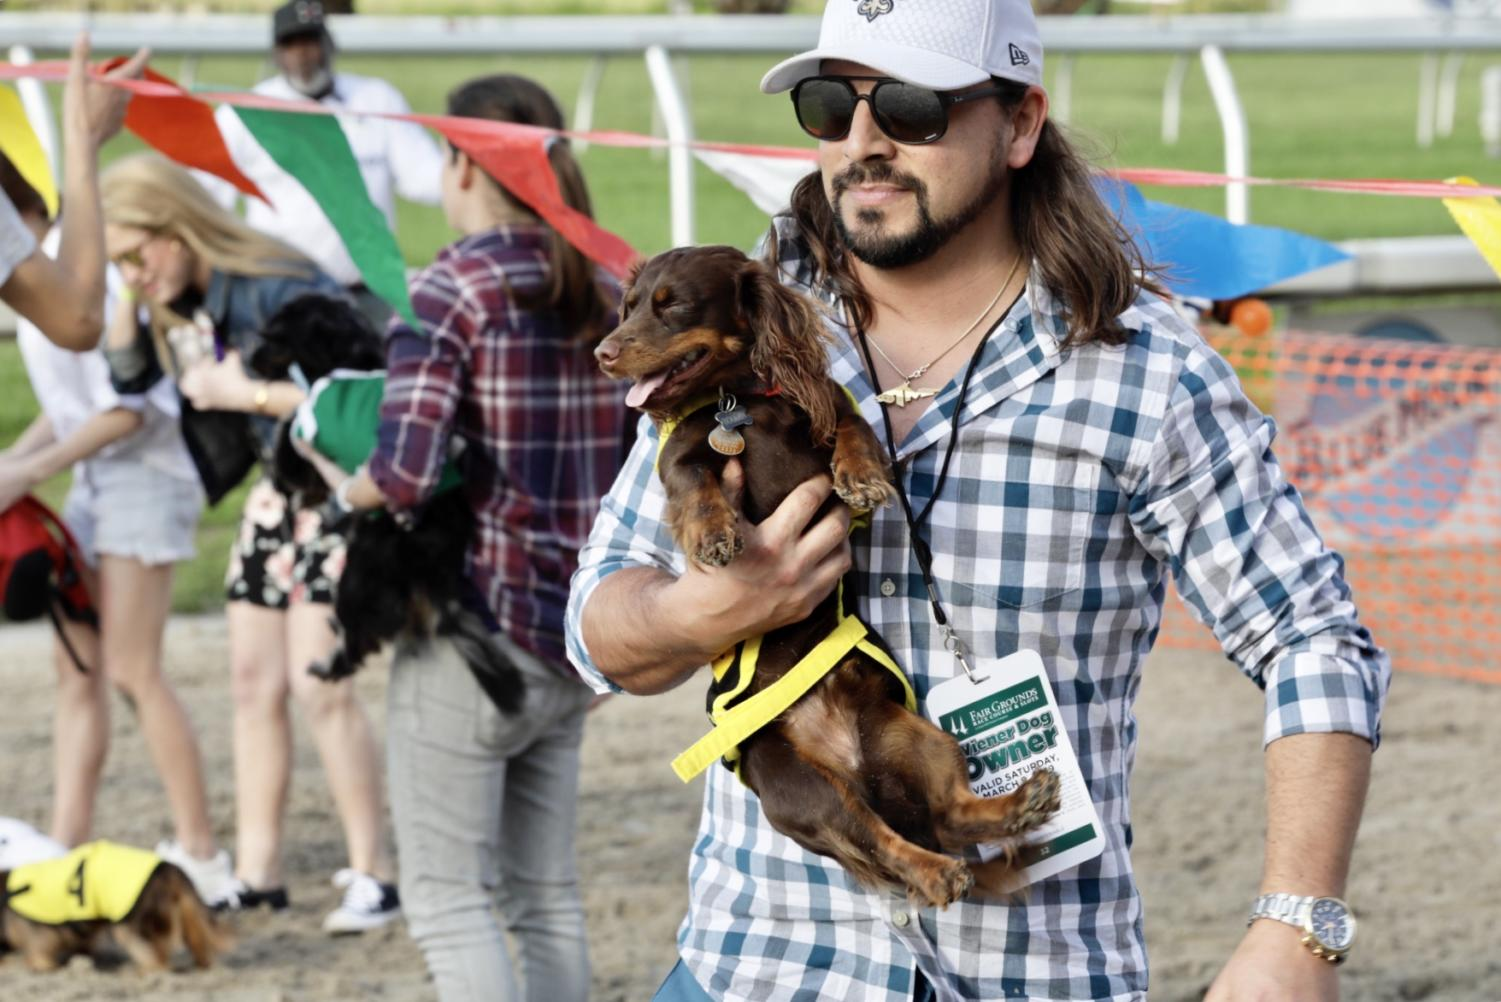 An+owner+picks+up+his+dog+after+a+race.+Some+dogs+underwent+diets+and+intensive+fetch+exercises+to+train+for+the+race.